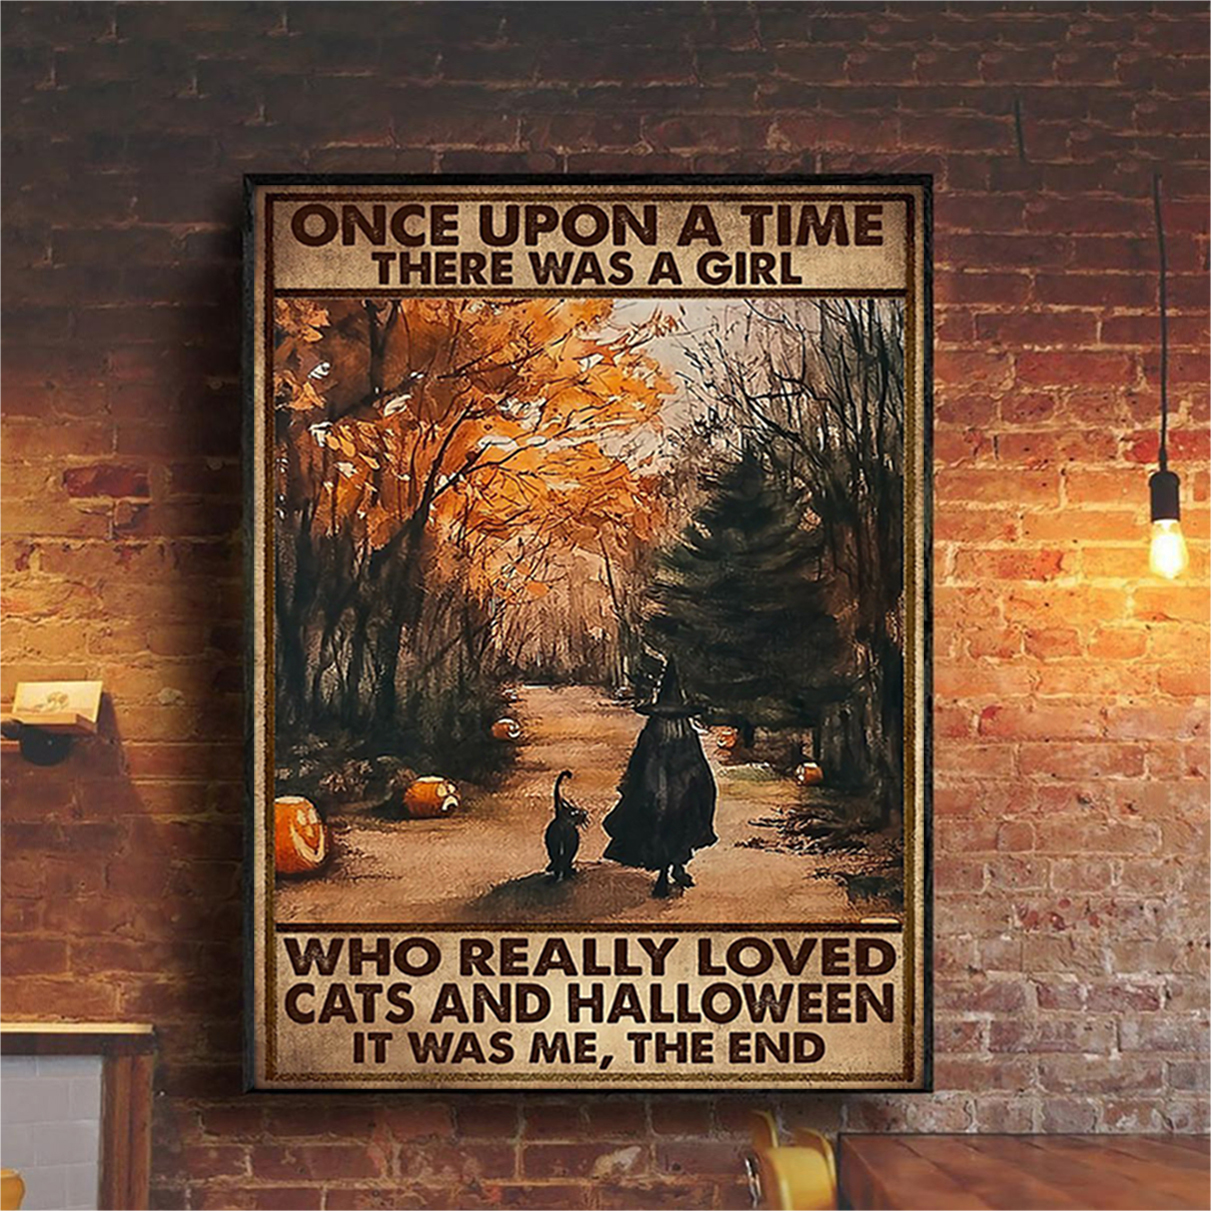 Once upon a time there was a girl who really loved cats and halloween poster A3